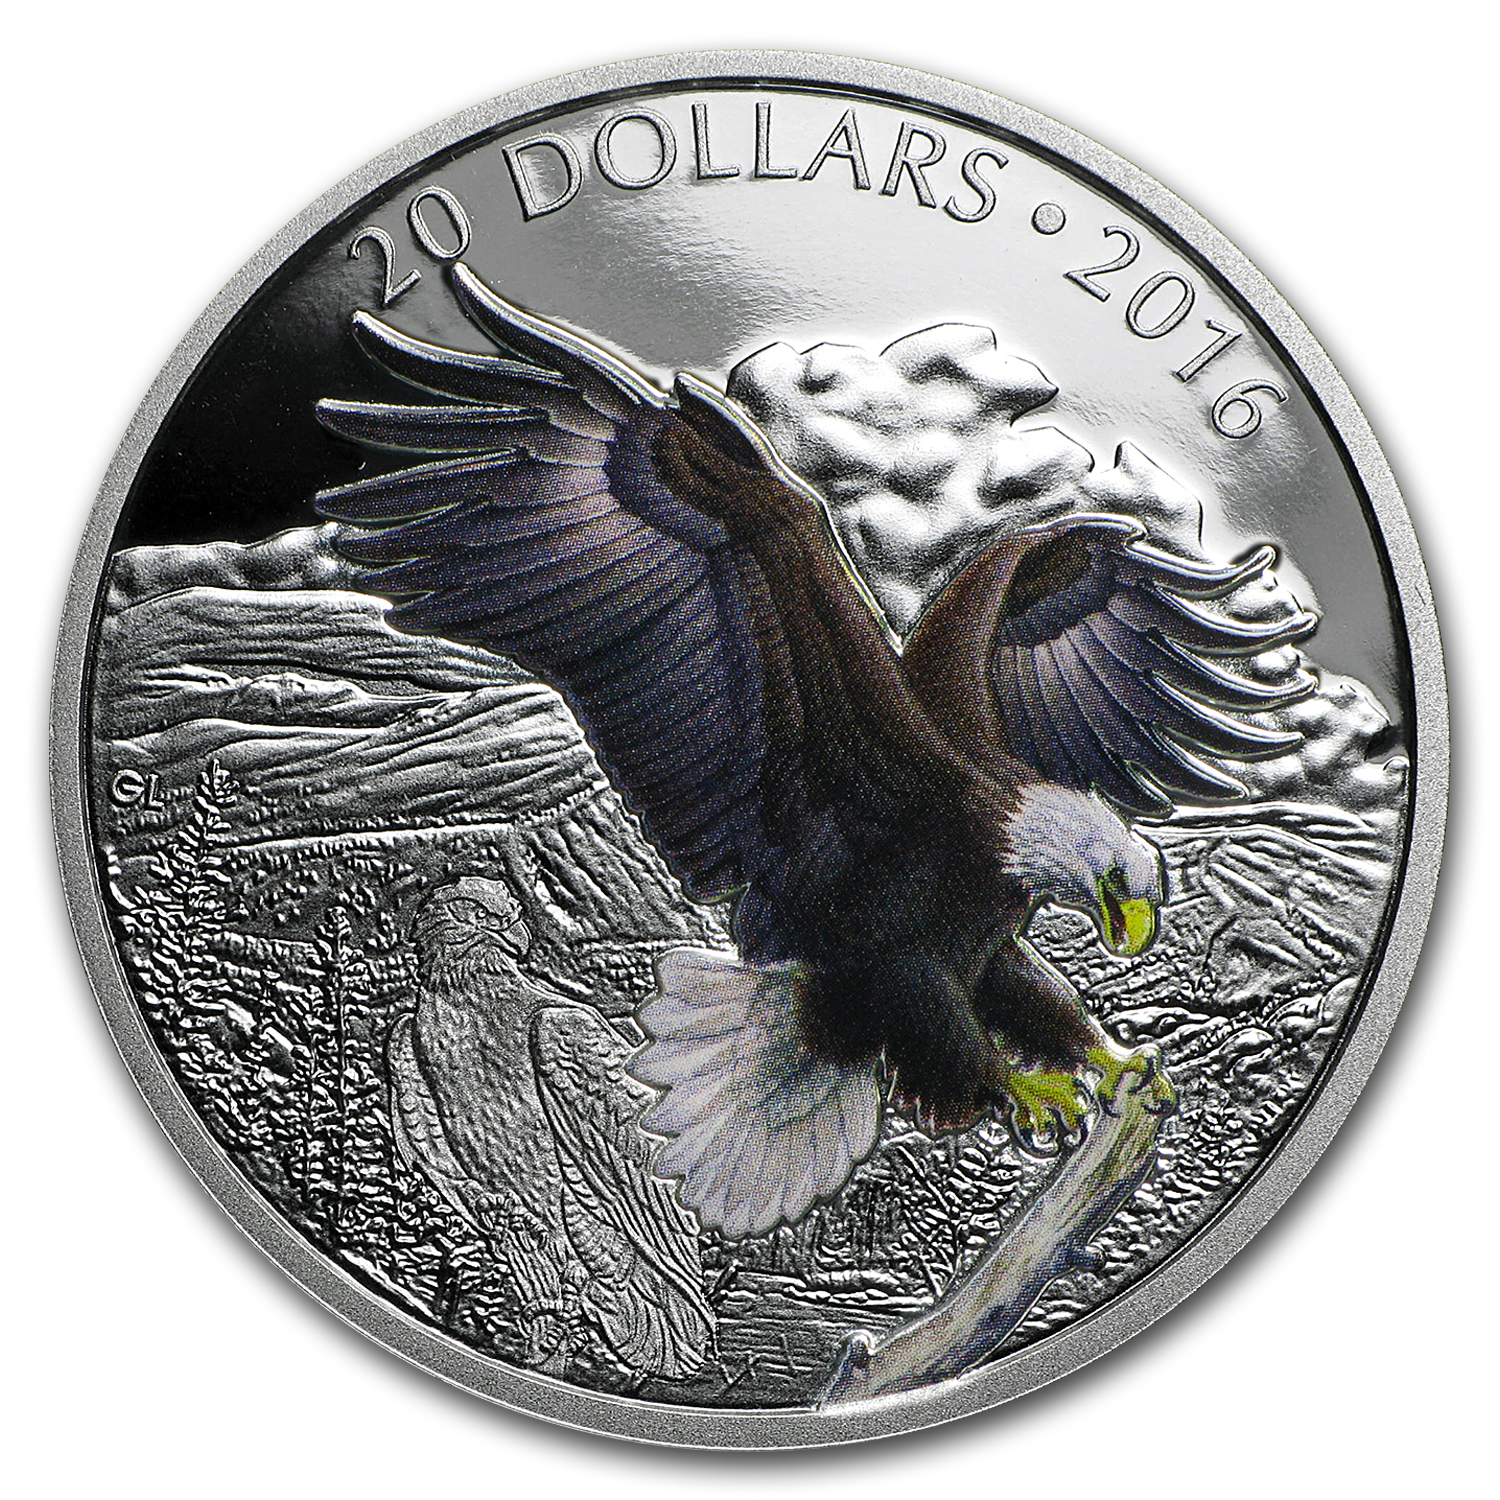 2016 Canada Proof 1 oz Silver $20 Bald Eagle